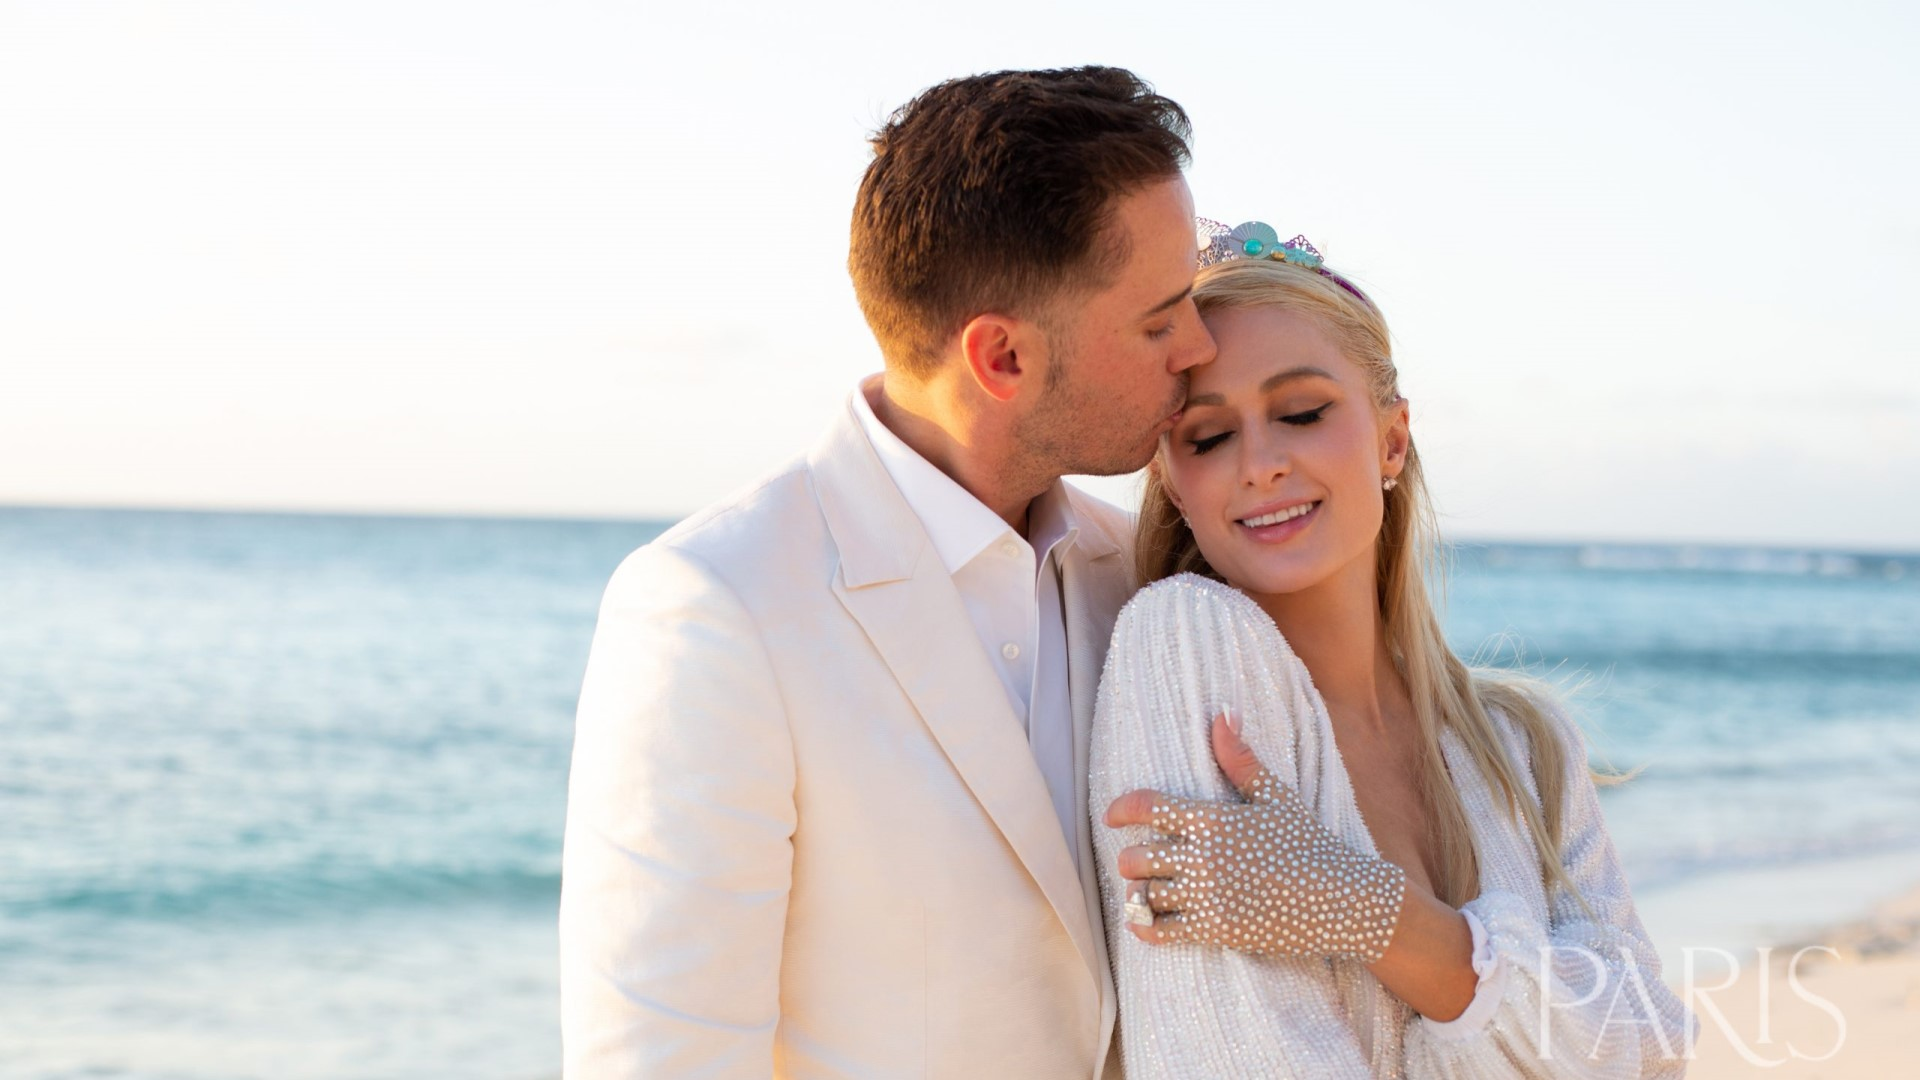 Paris Hilton engaged: another chapter in her life of luxury and tragedy